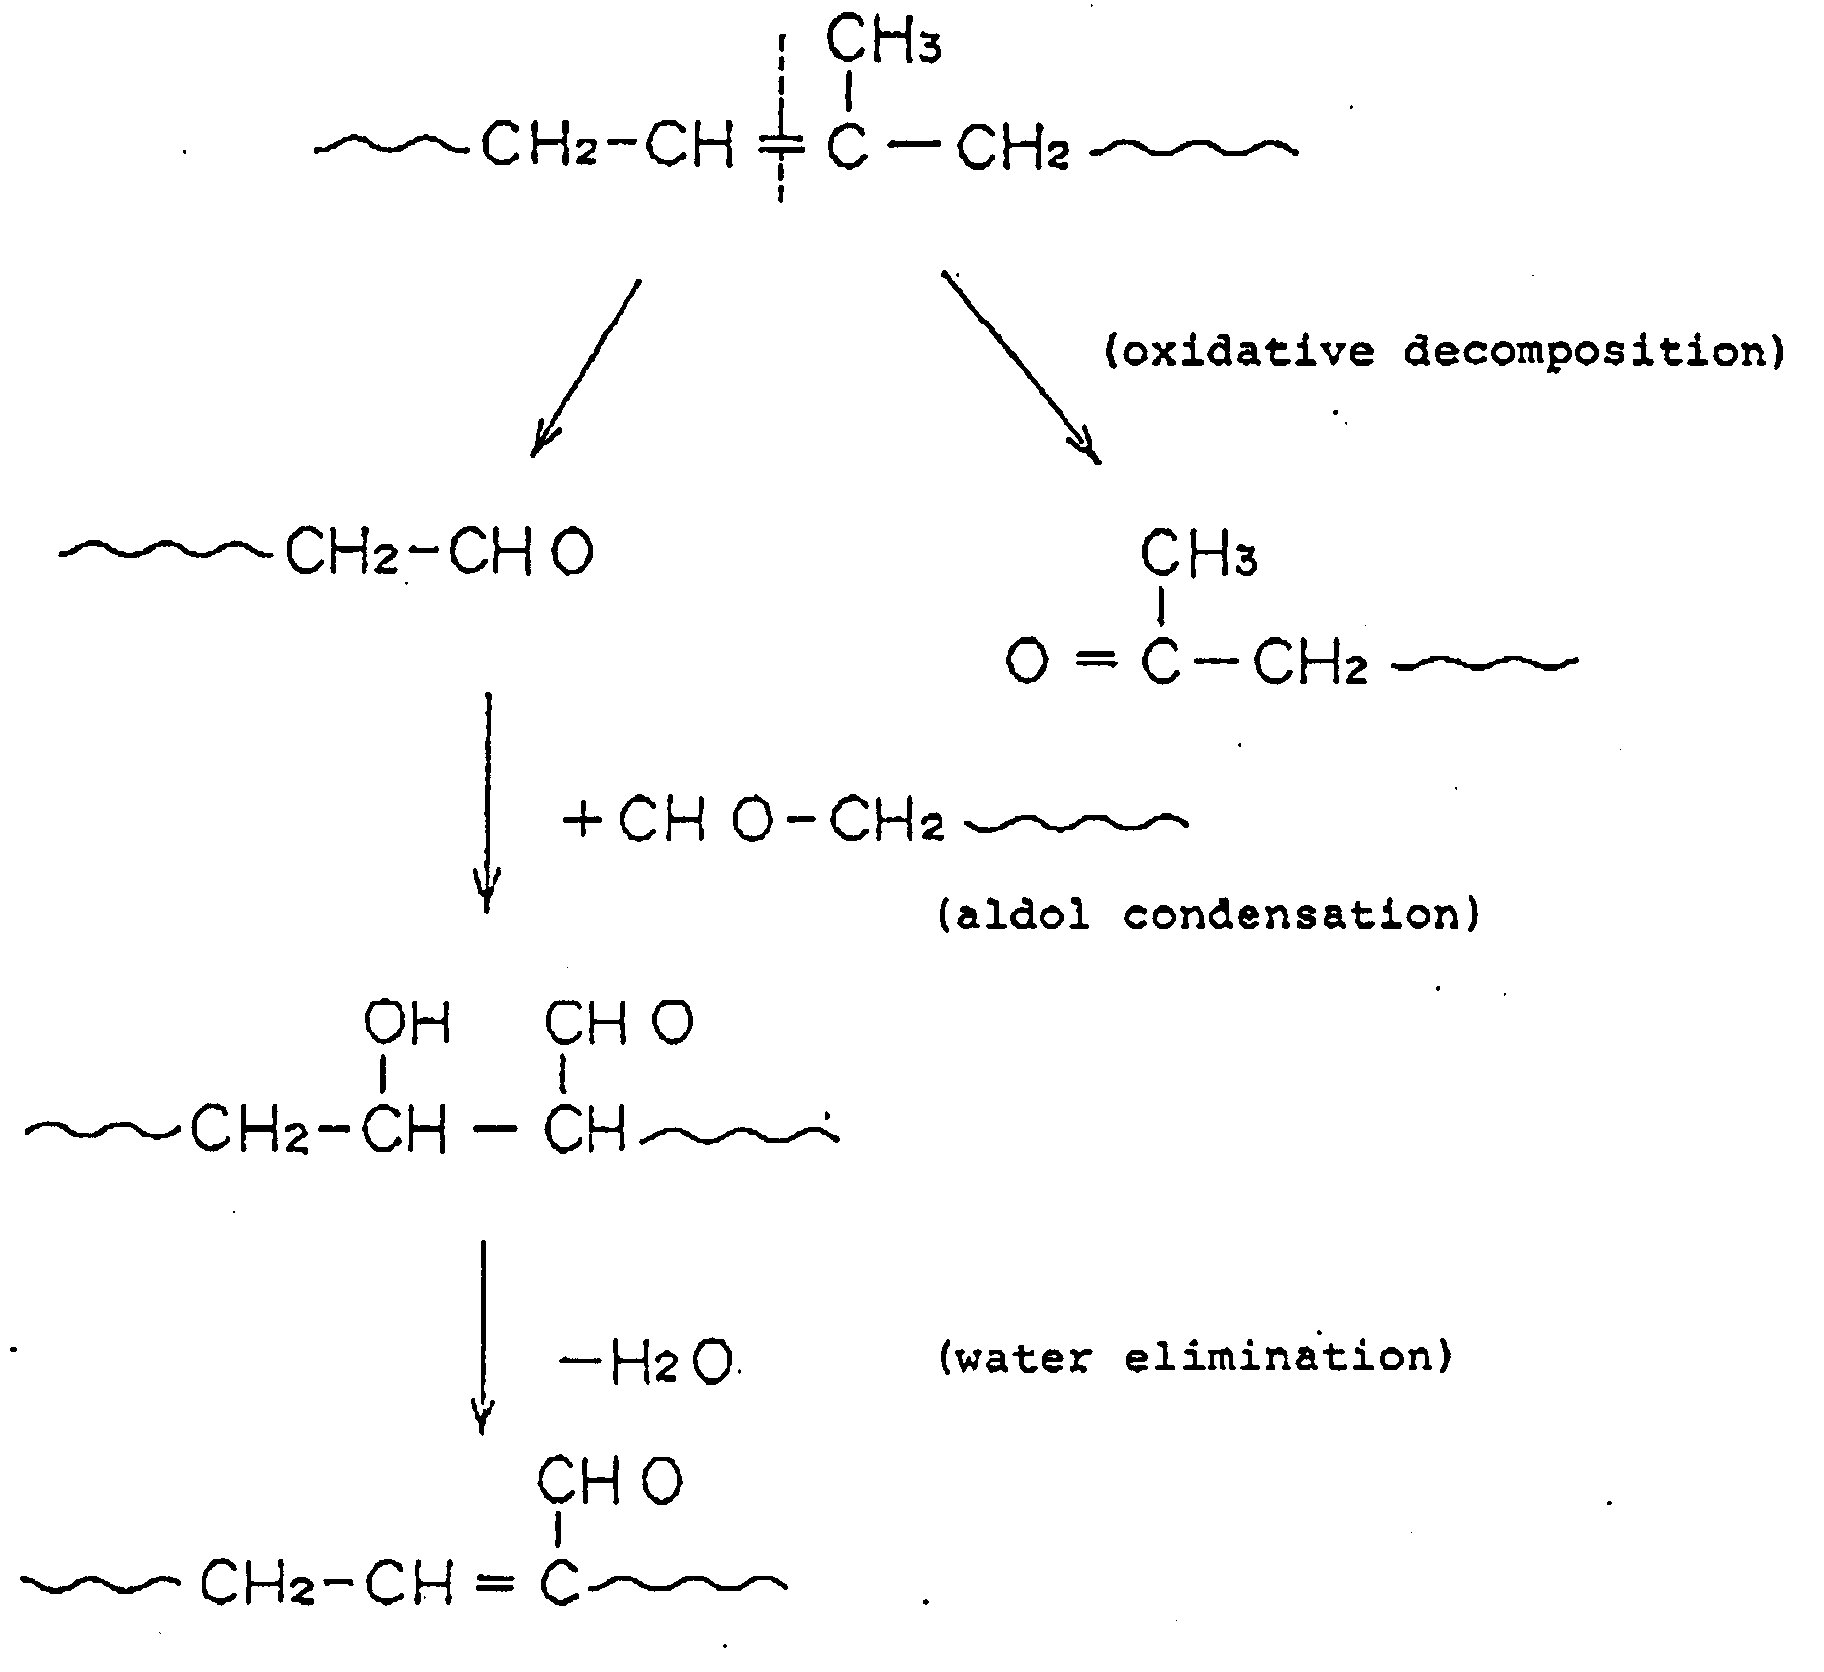 sythesis reaction